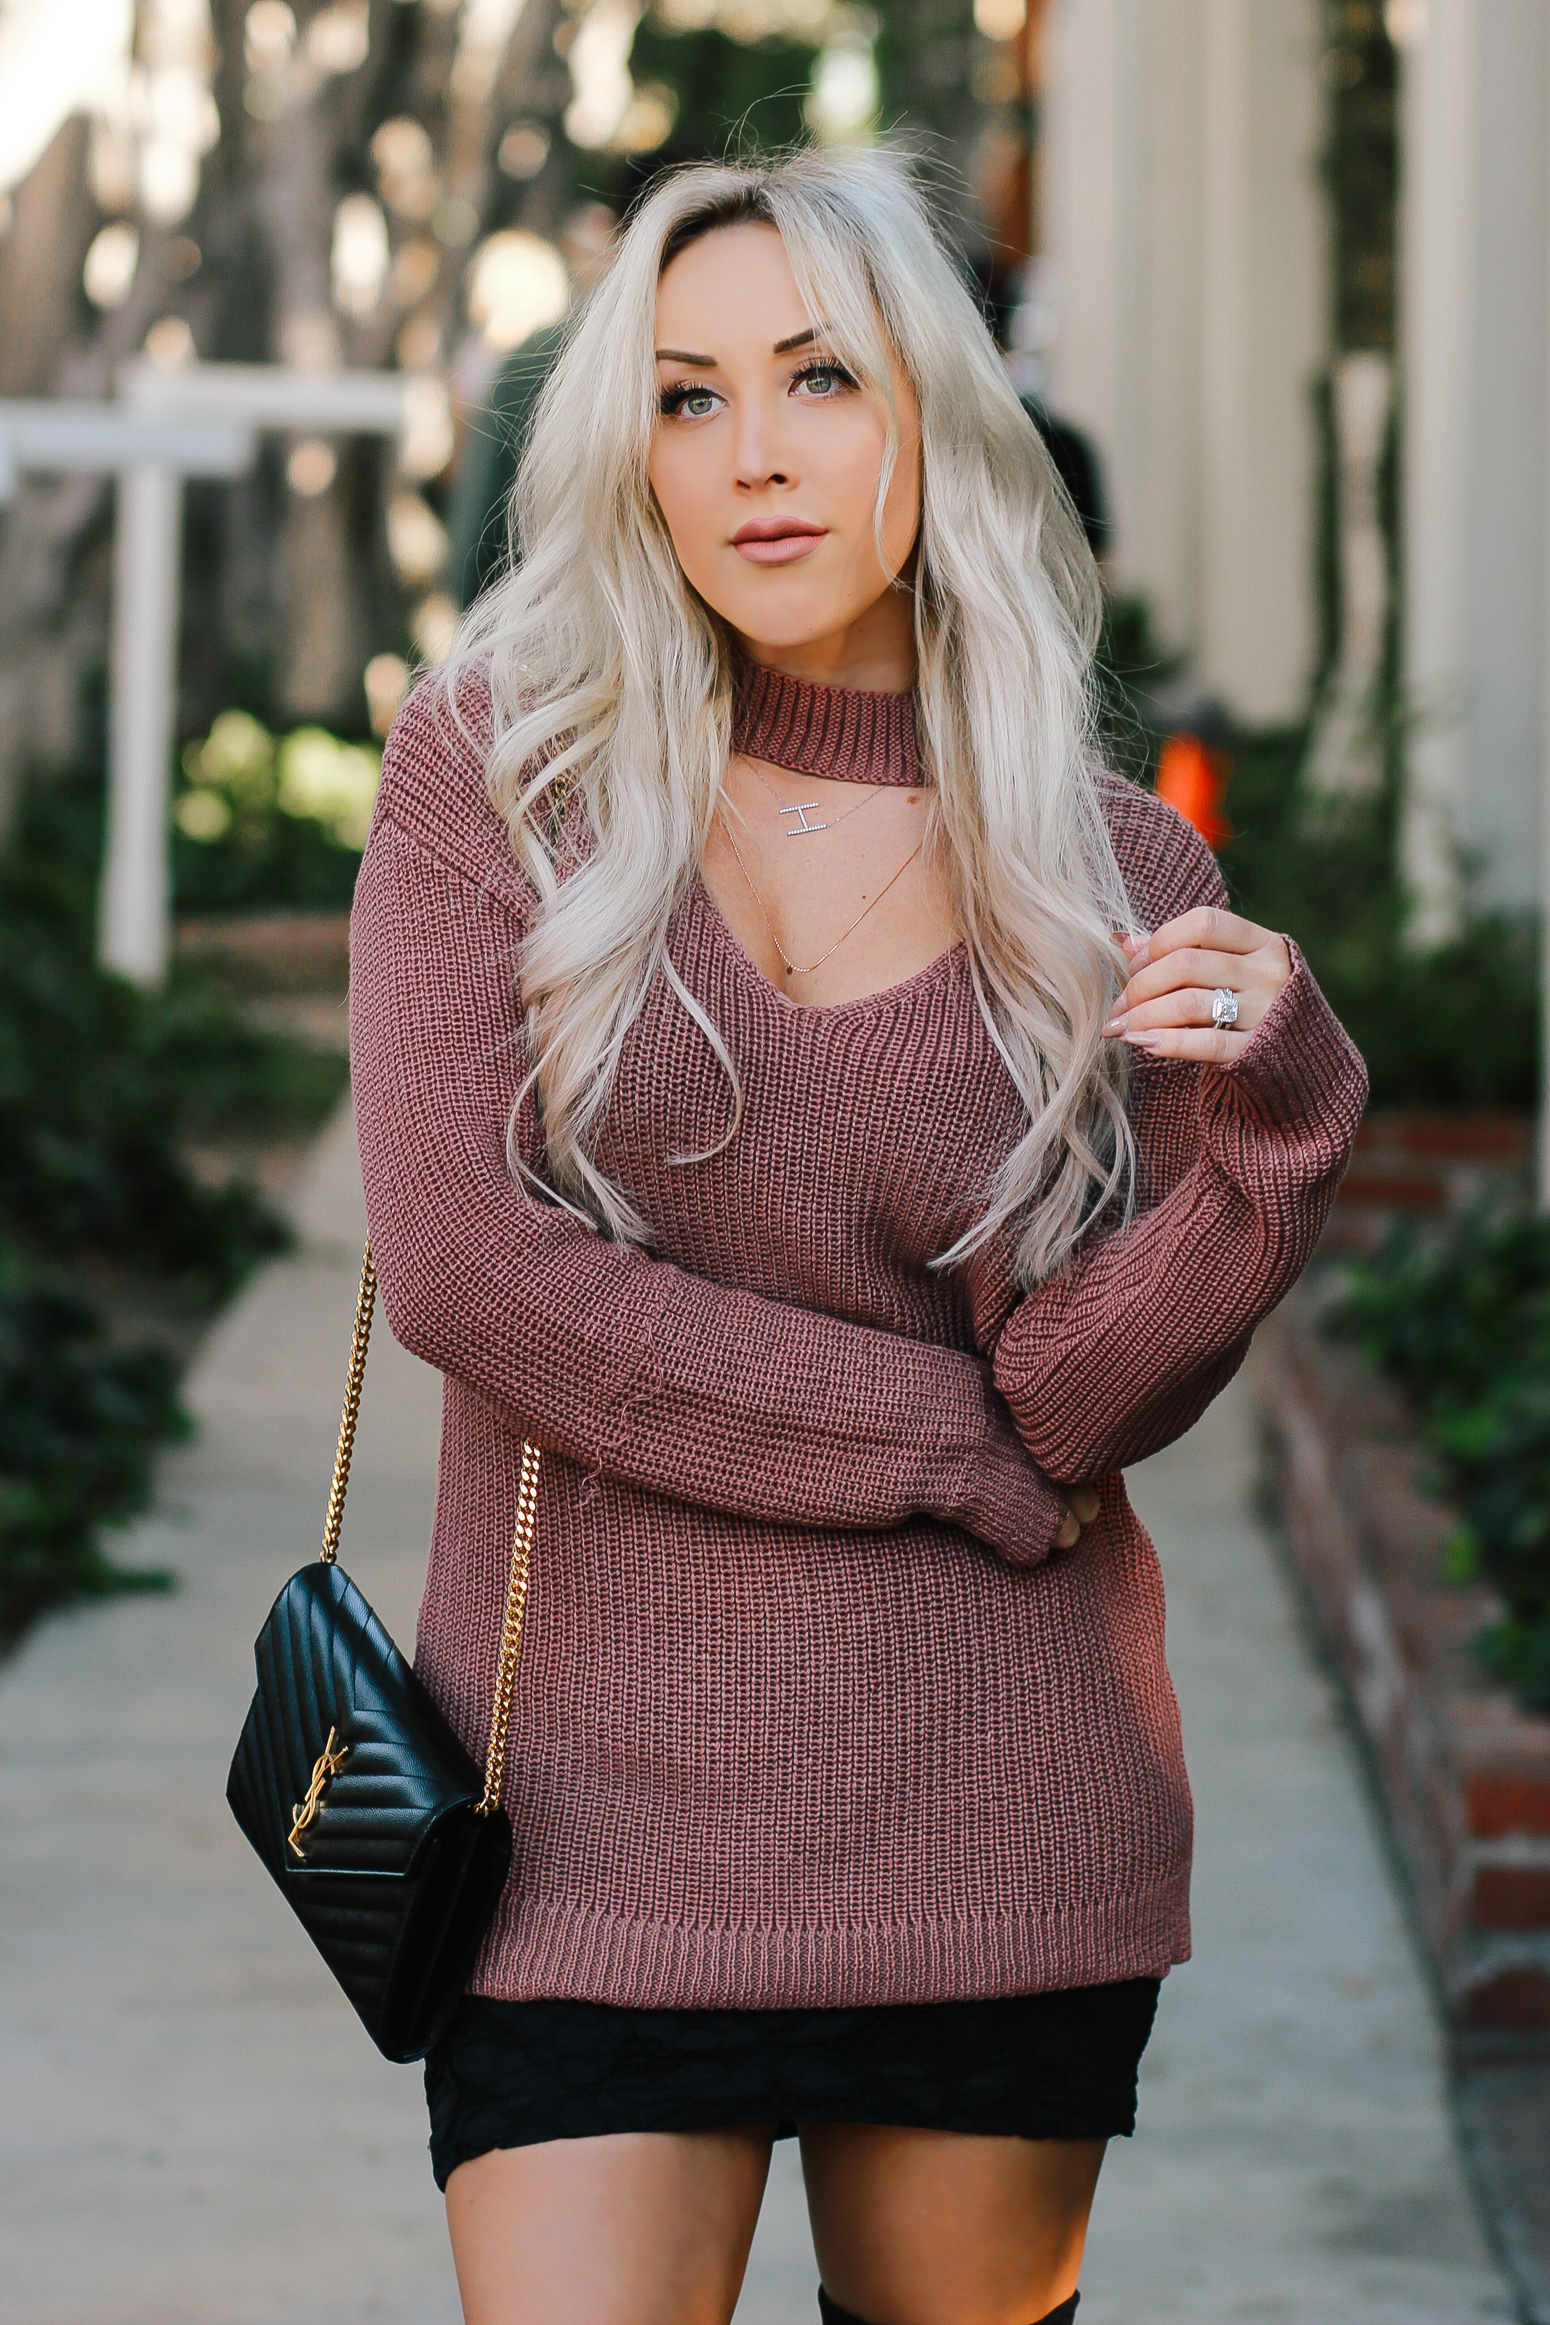 Blondie in the City | Mauce Sweater Dress, Black Lace Skirt, Thigh High Boots, YSL Bag | Fall Fashion